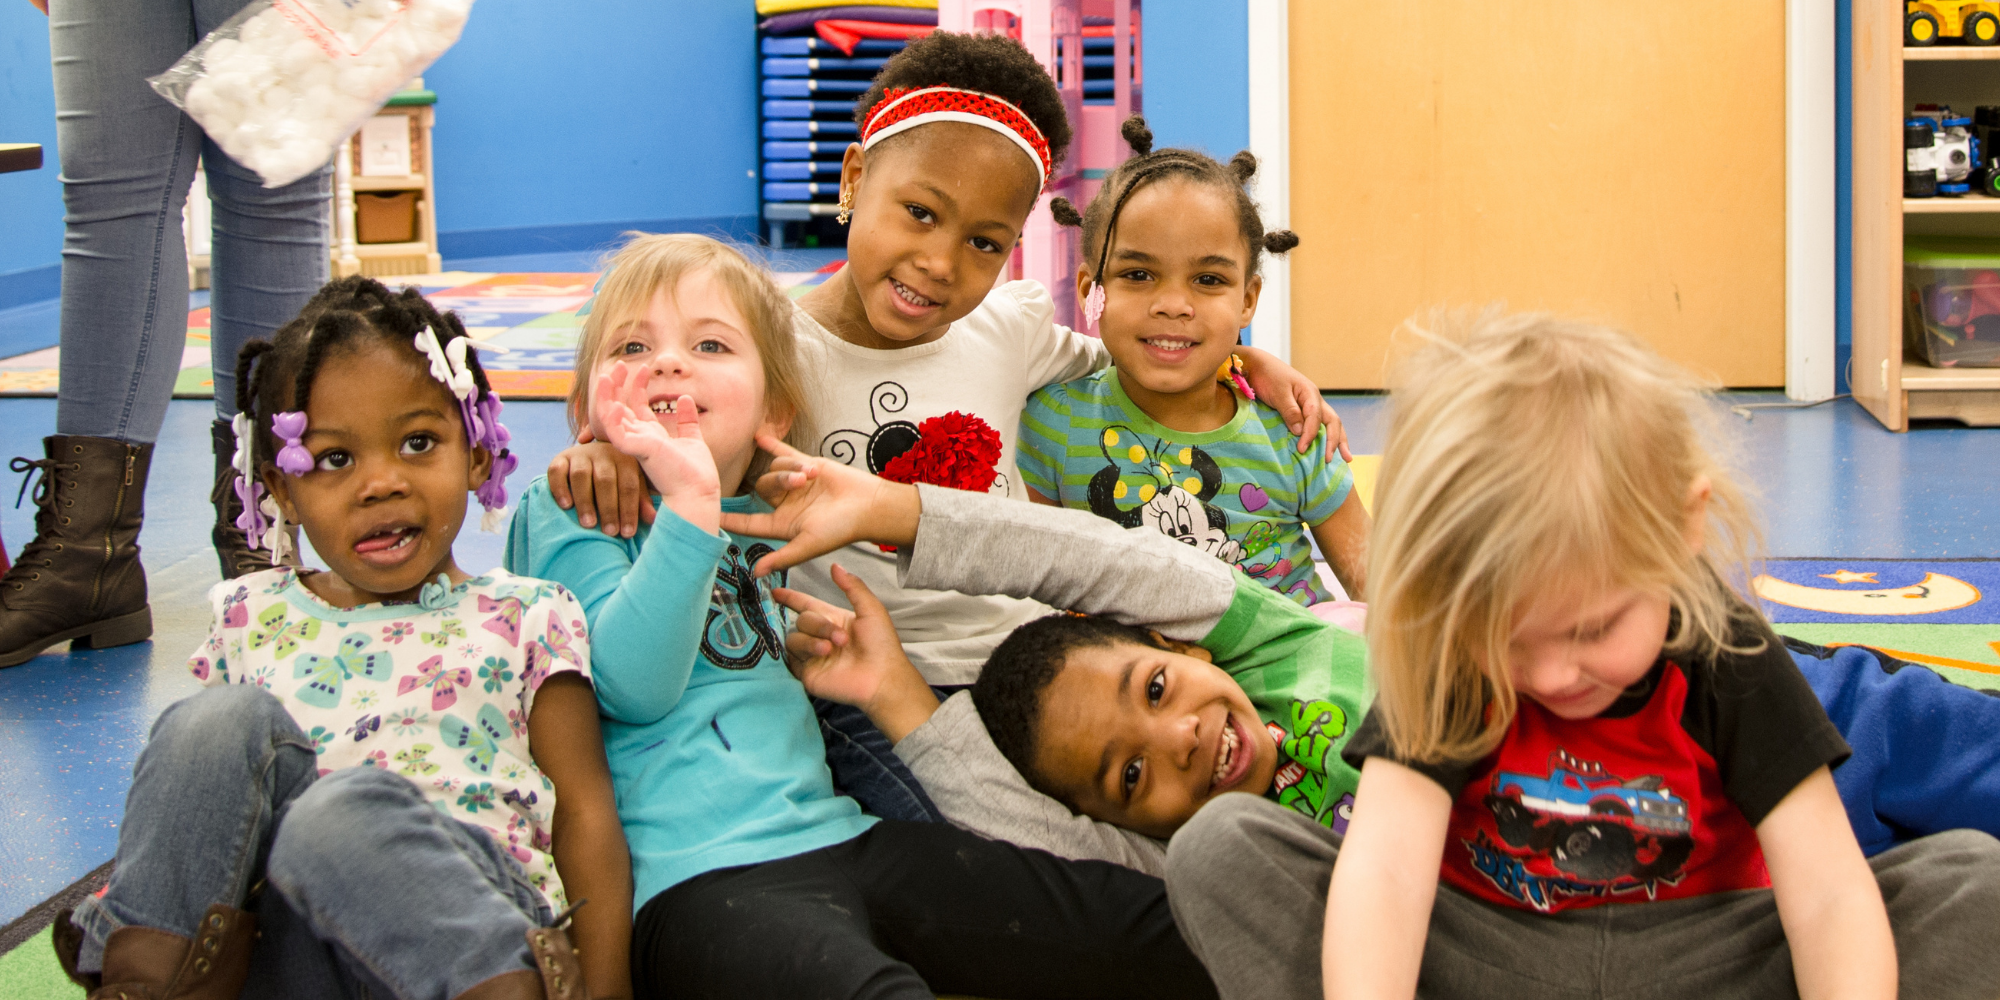 Group of children learning together